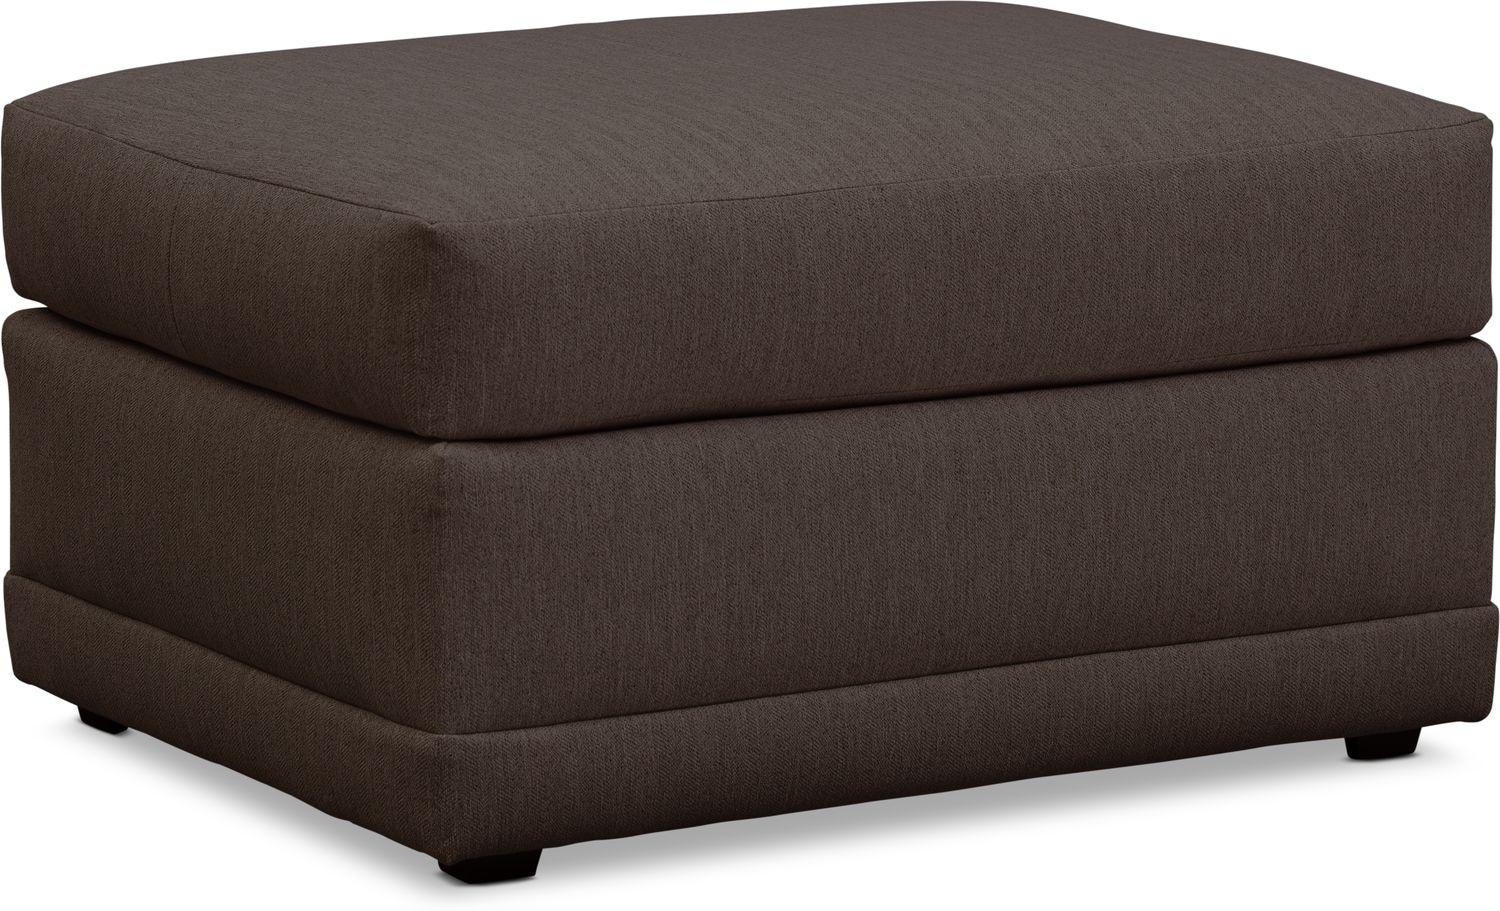 Living Room Furniture - Berkeley Ottoman